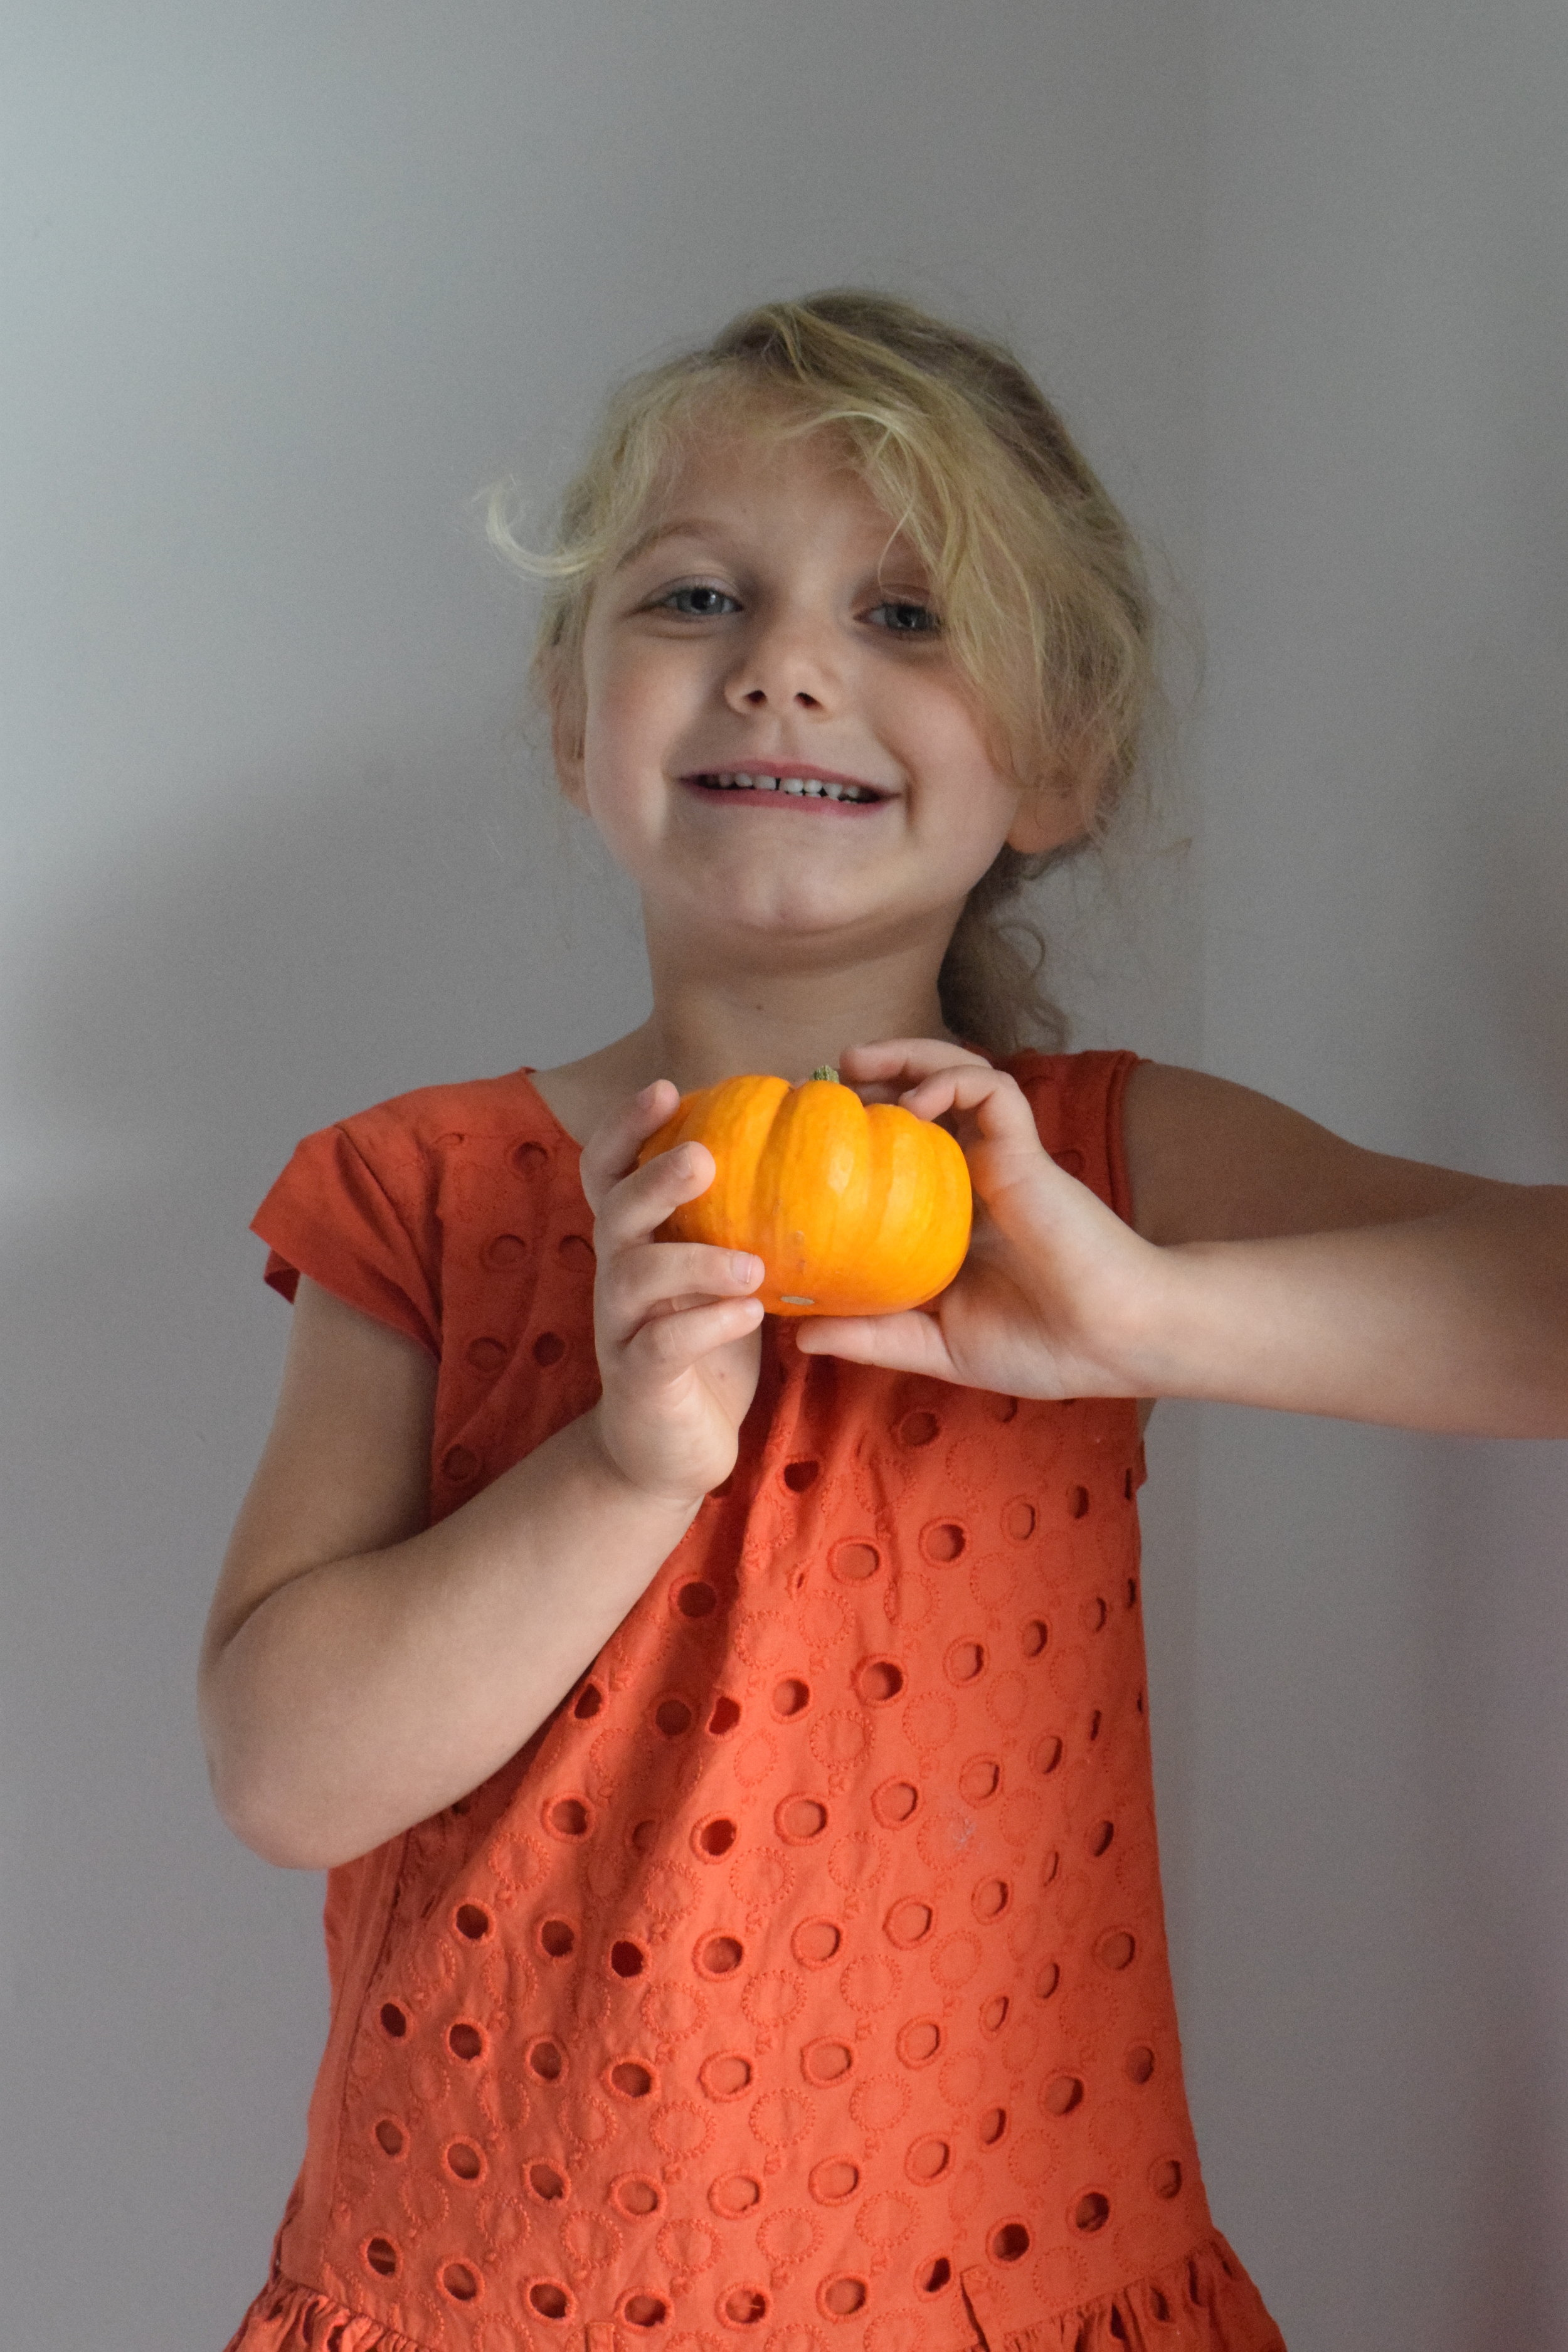 Squidgy and her baby pumpkin